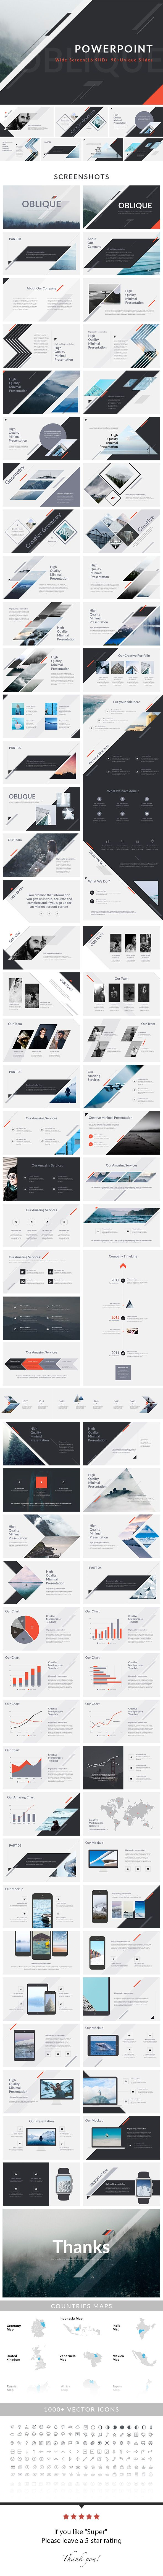 Oblique - PowerPoint Presentation Template. Download: https://graphicriver.net/item/oblique-powerpoint-presentation-template/19780655?ref=thanhdesign